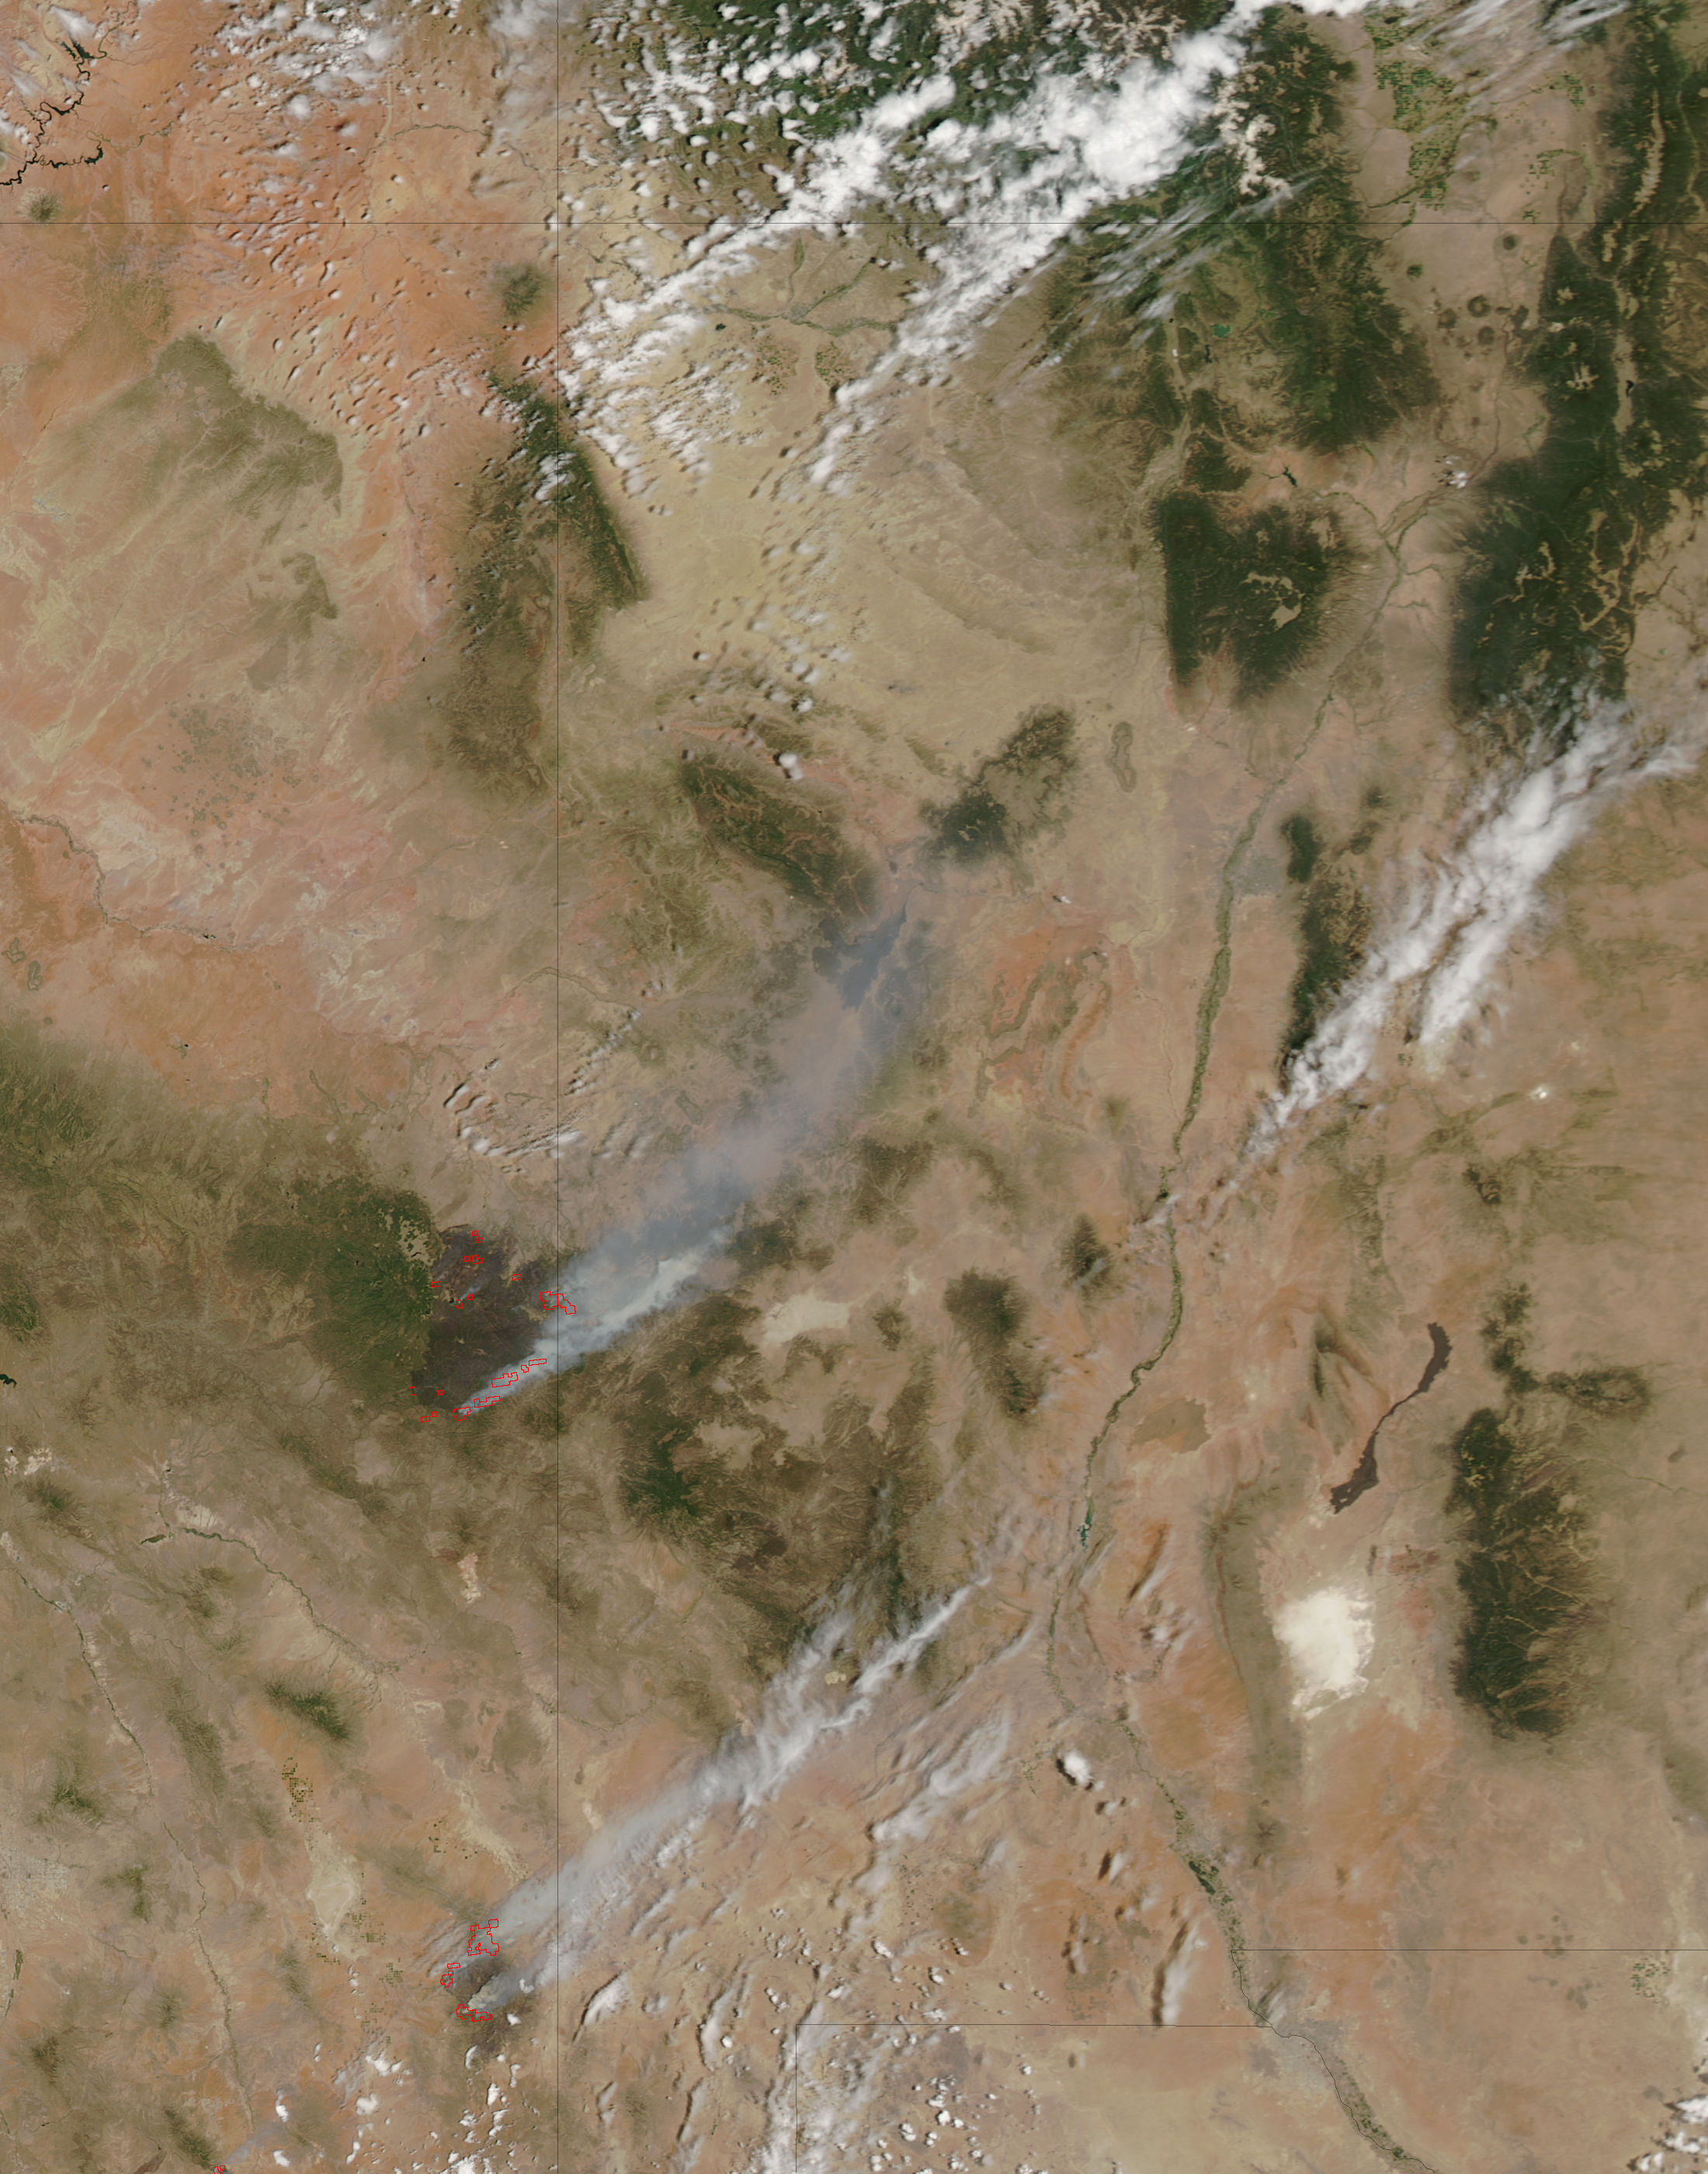 MODIS satellite imagery of the Wallow fire on 12 June 2011